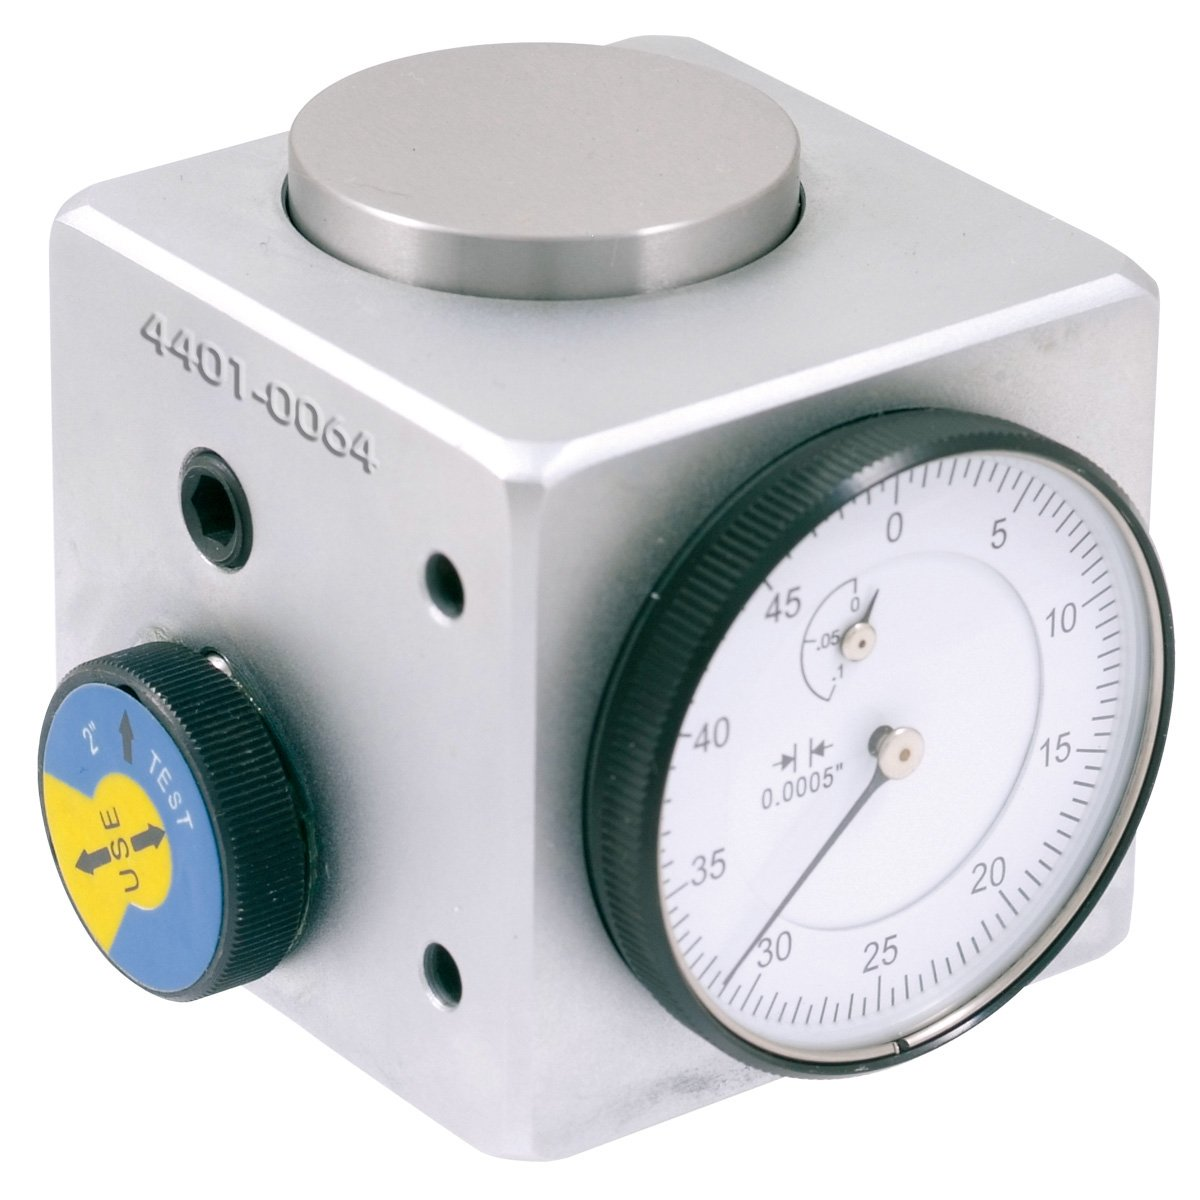 HHIP 4401-0064 Pro-Series Dial Z-Axis Setting Indicator with Mag Base, 2